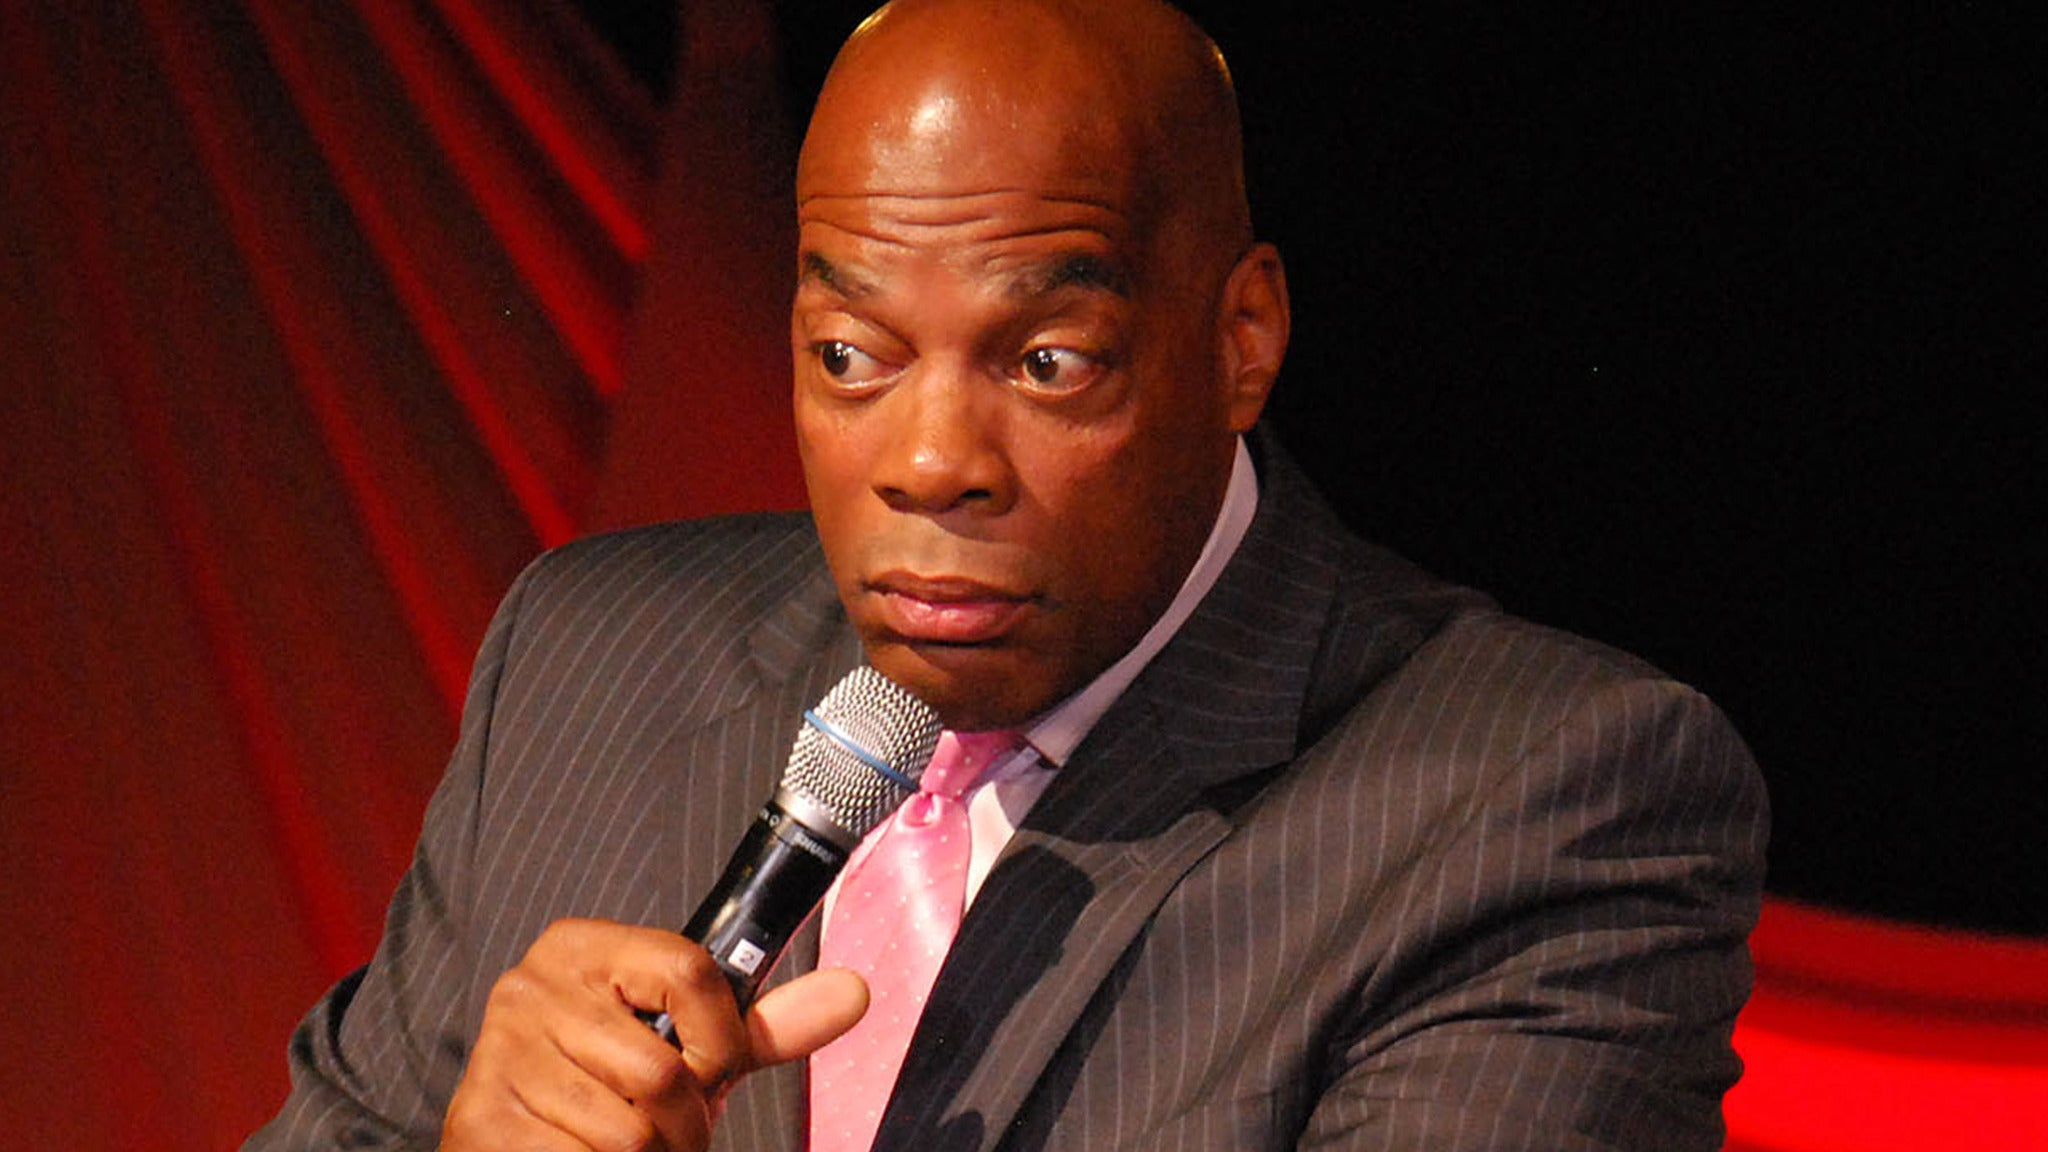 Alonzo Bodden at Brea Improv - Brea, CA 92821